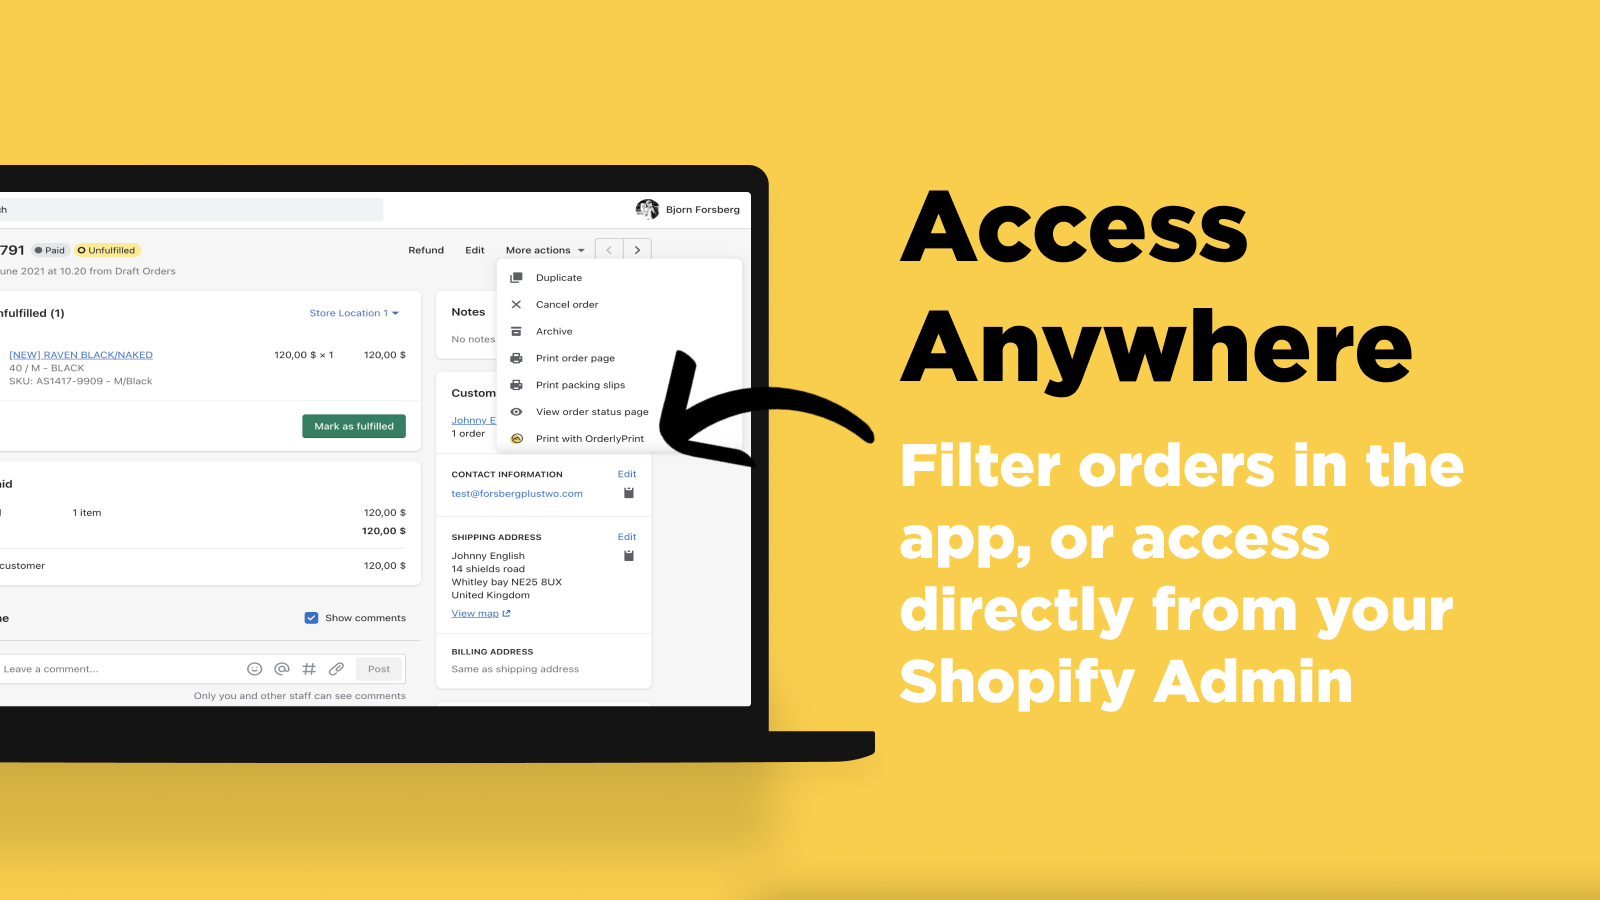 Filter in the app, or access directly from your Shopify Admin